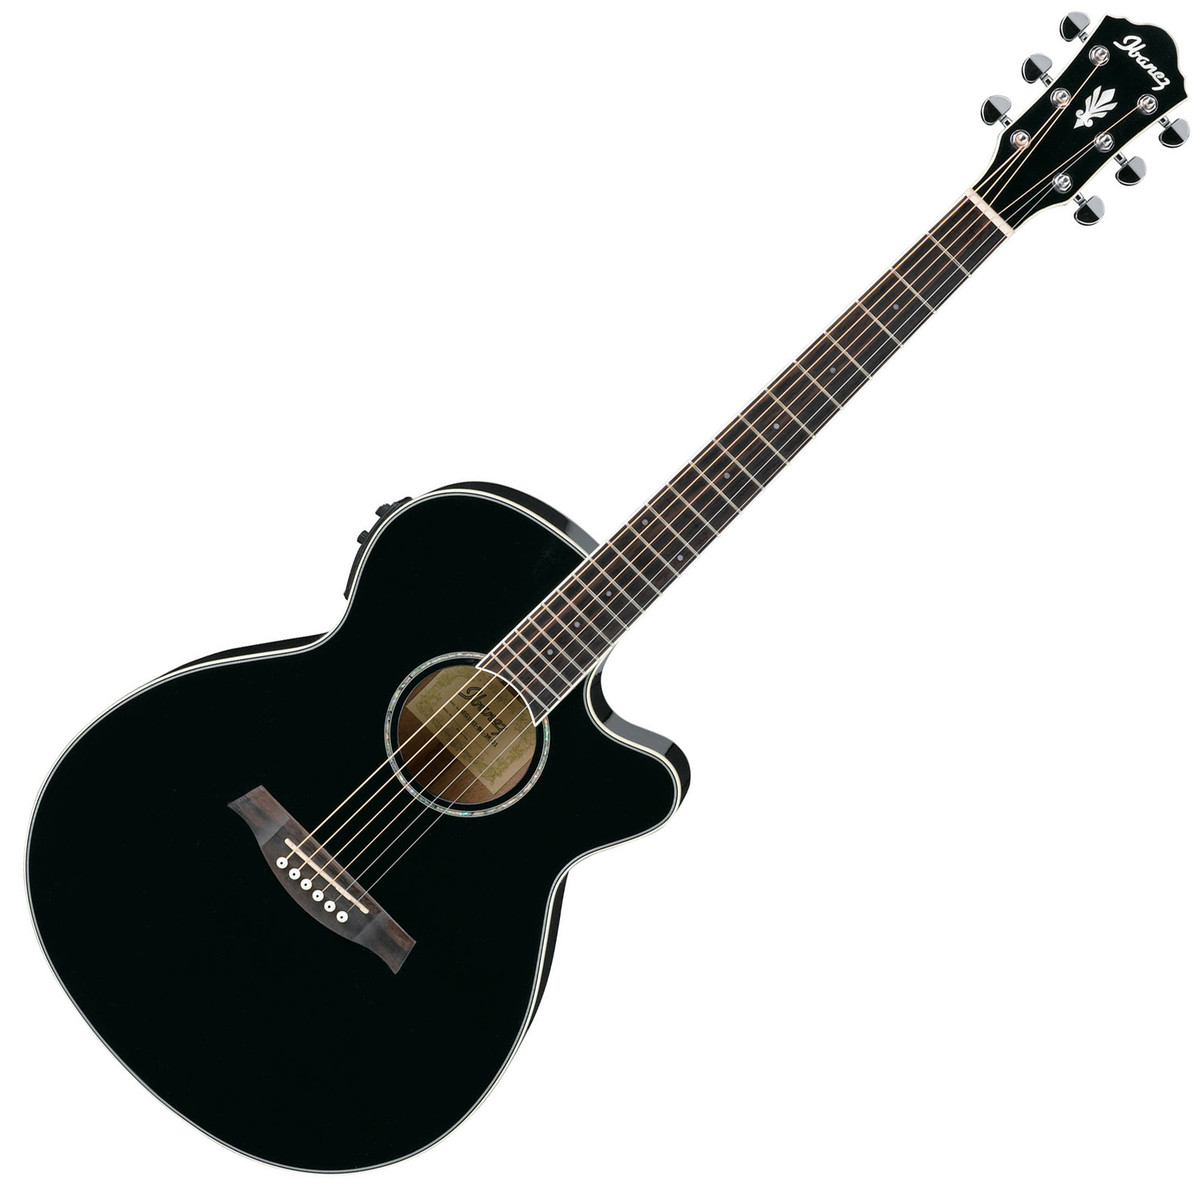 ibanez aeg10ii guitare electro acoustique noir. Black Bedroom Furniture Sets. Home Design Ideas